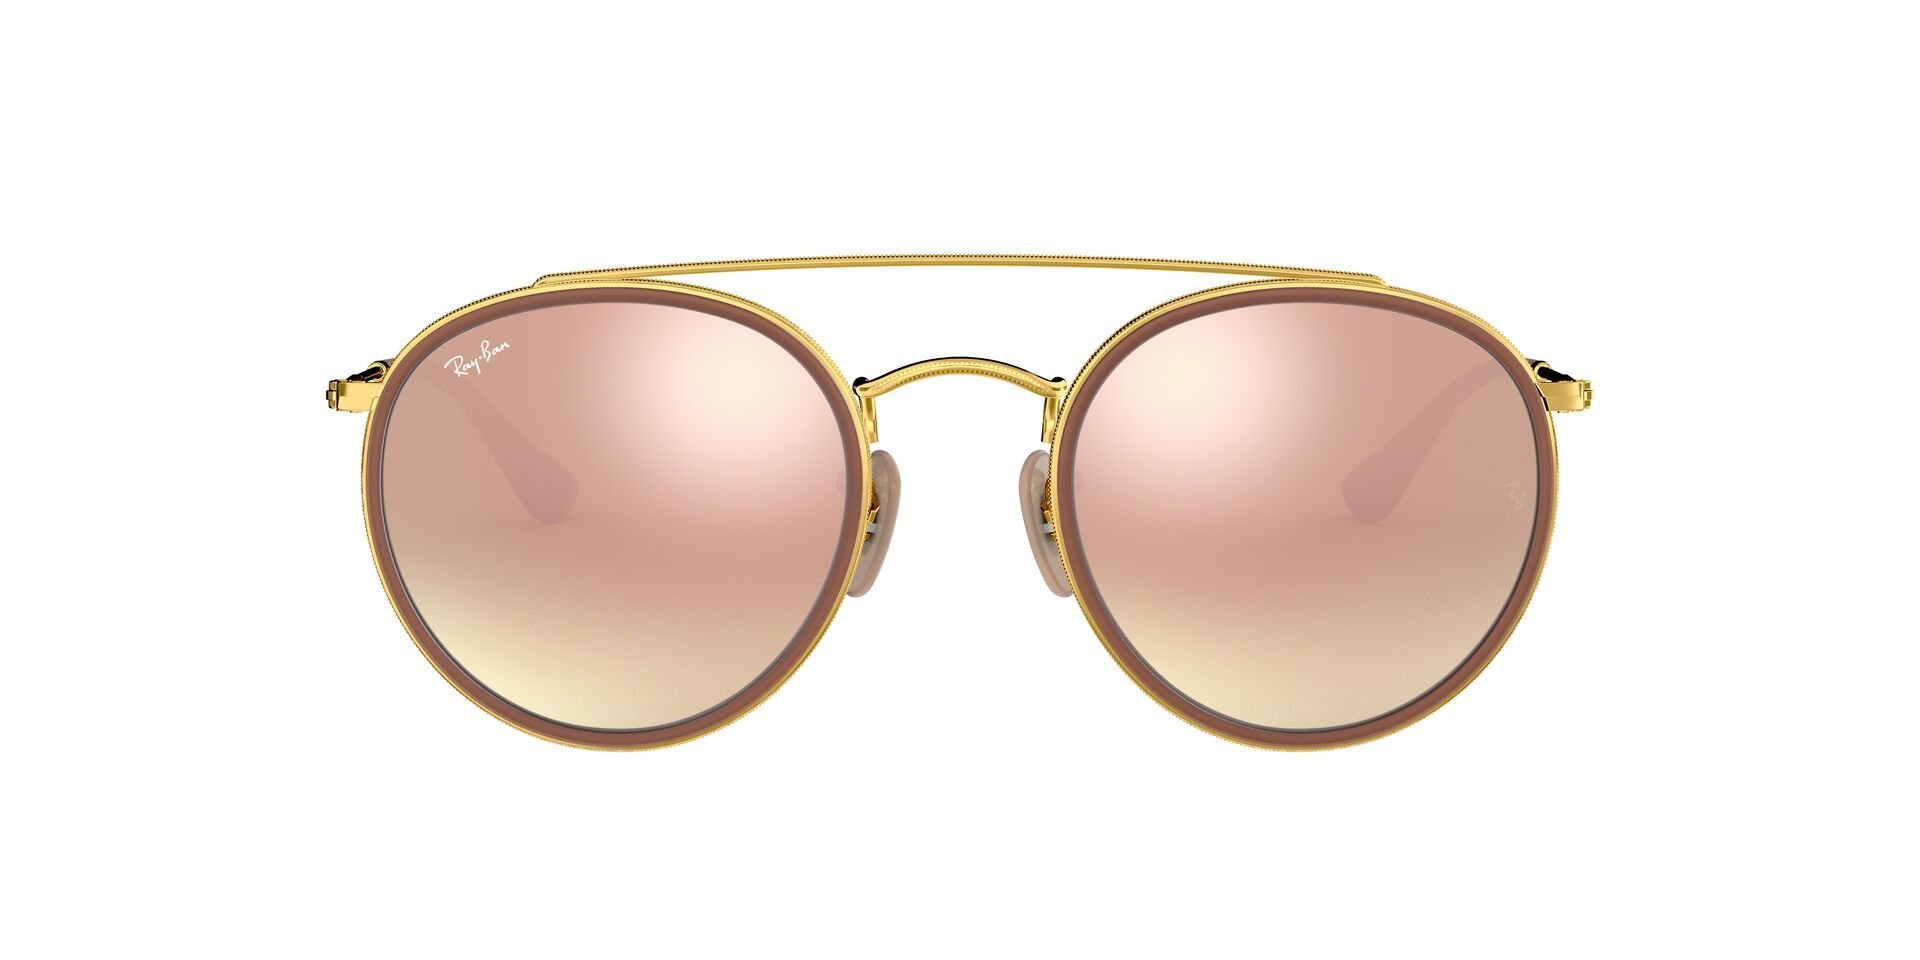 Ray Ban - RB3647N Gold Brown Oval Unisex Sunglasses - 51mm-Sunglasses-Designer Eyes